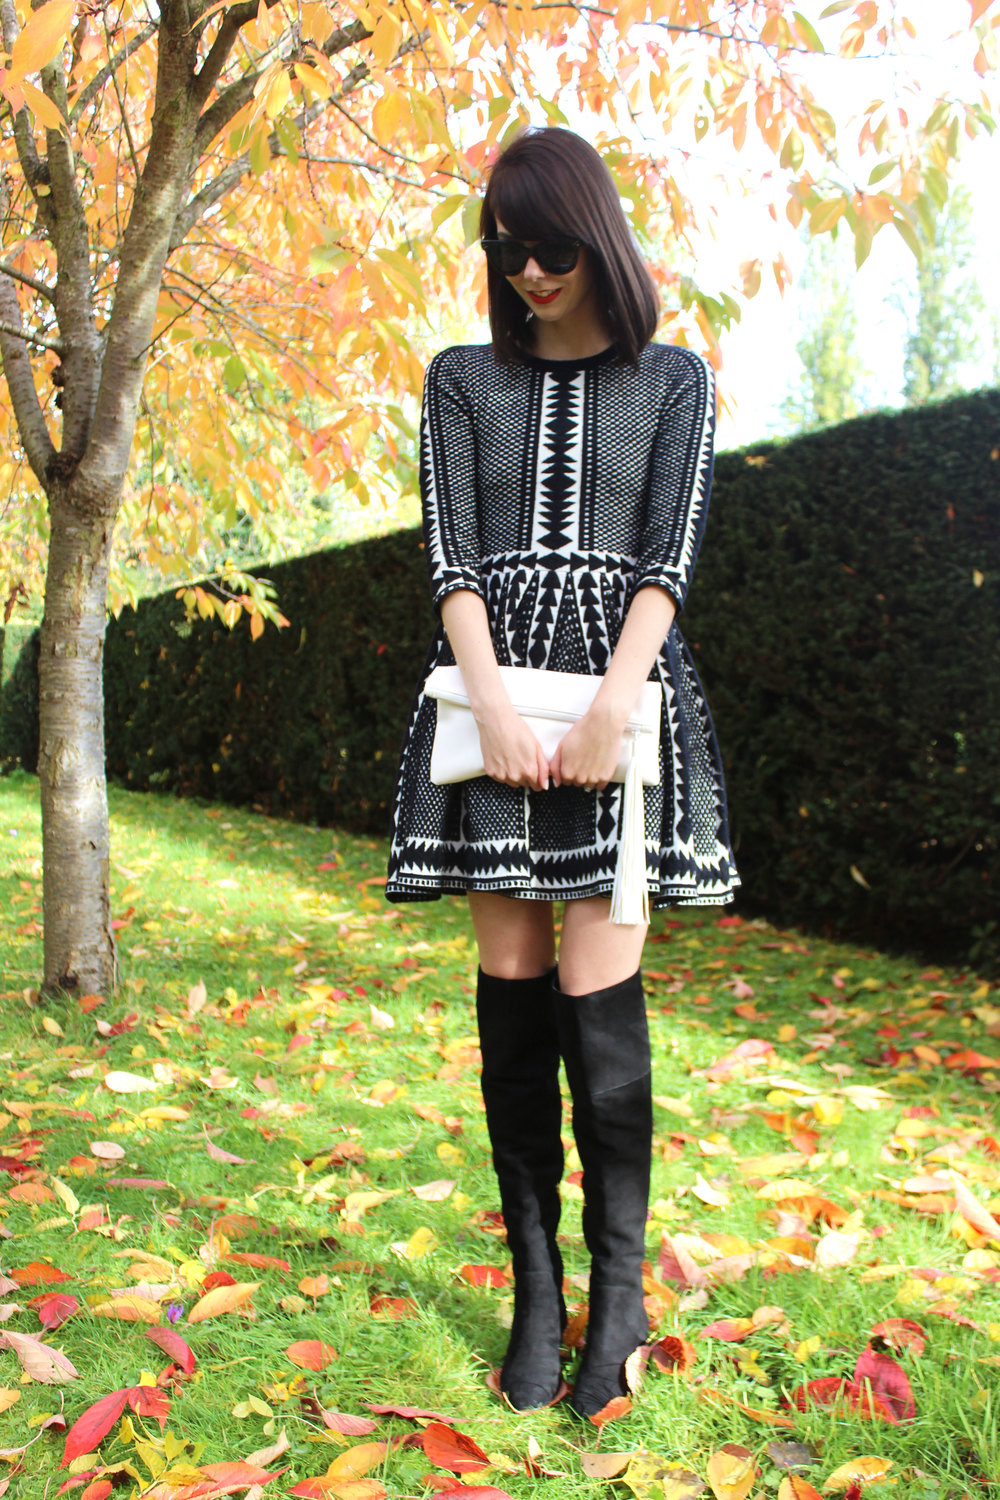 Cozy sweater dress with suede over the knee boots - perfect fall outfit!